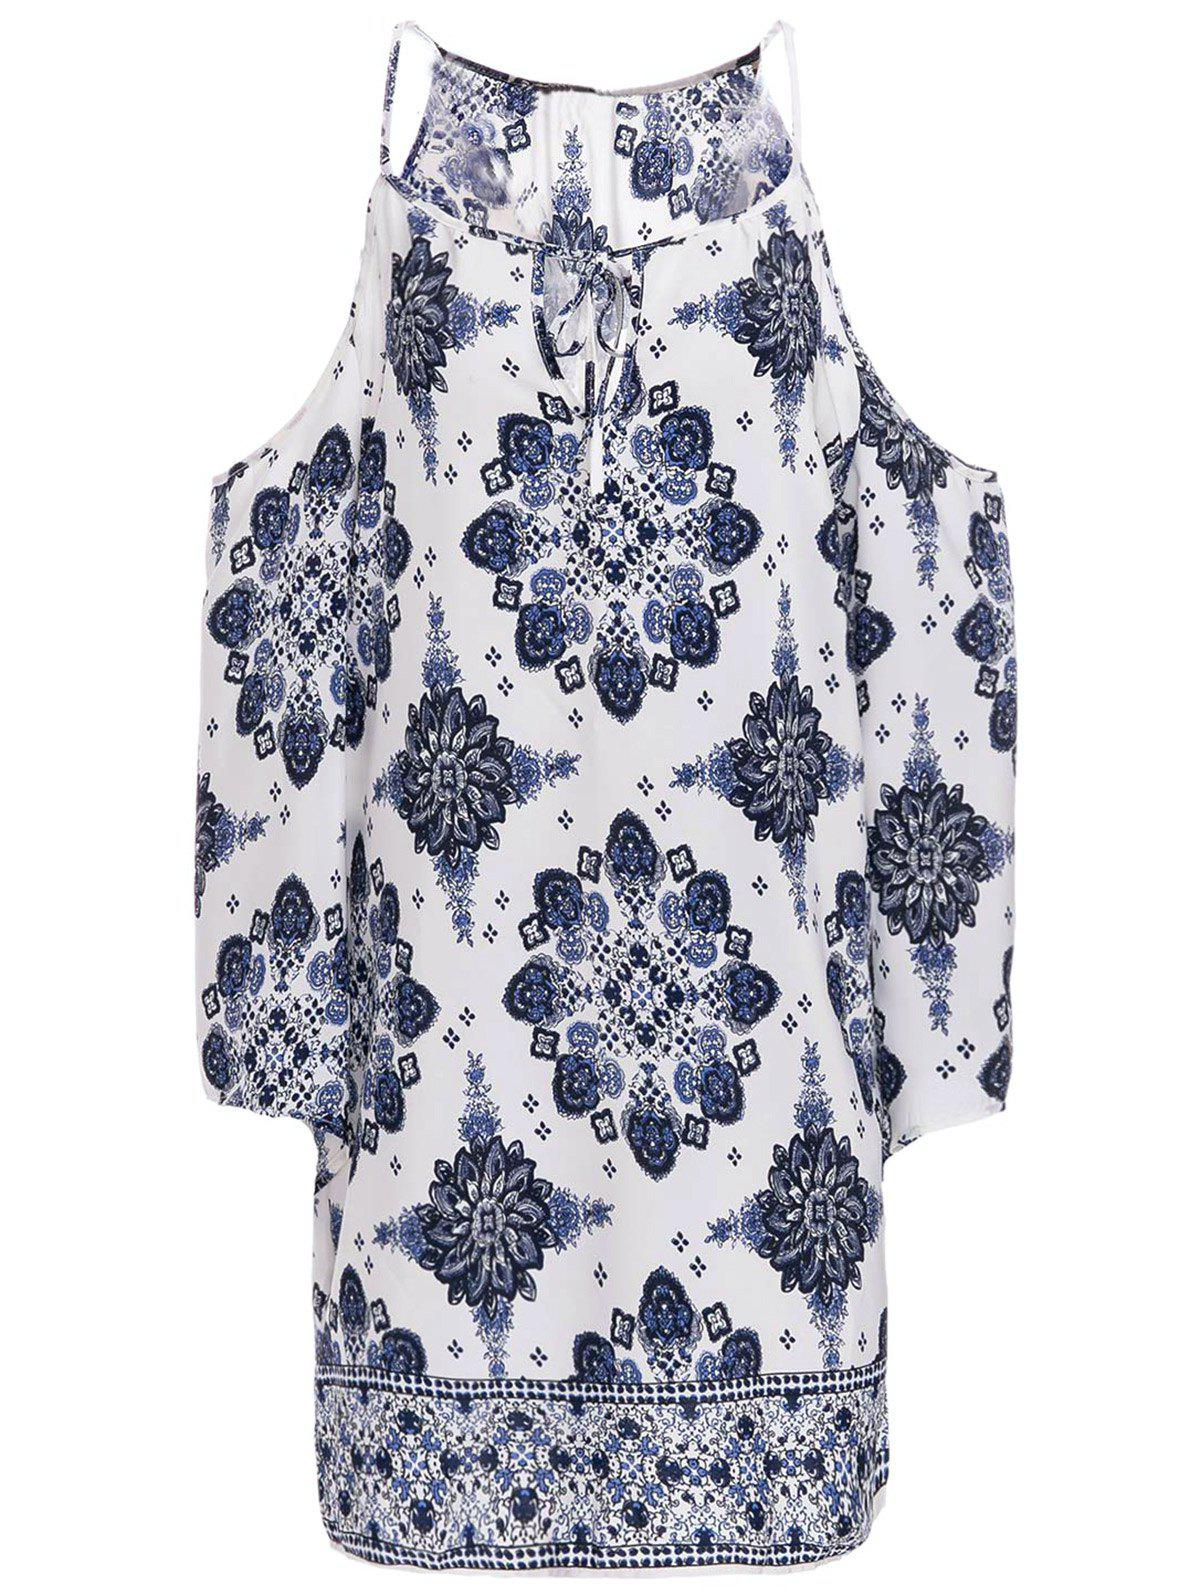 Trendy Women's V-Neck 3/4 Sleeve Cut Out Printed Dress